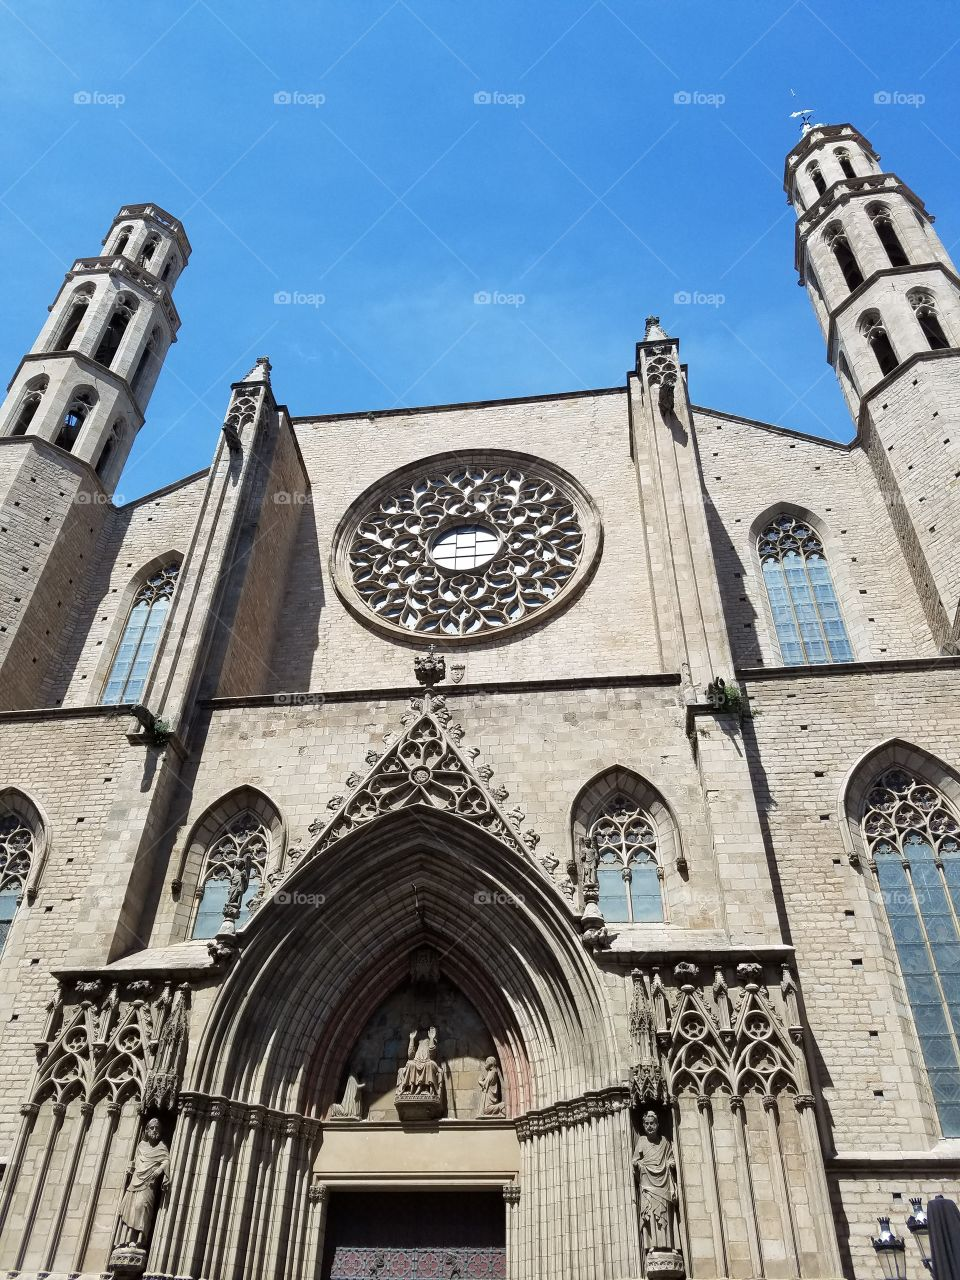 Architecture, Church, Religion, Cathedral, Building